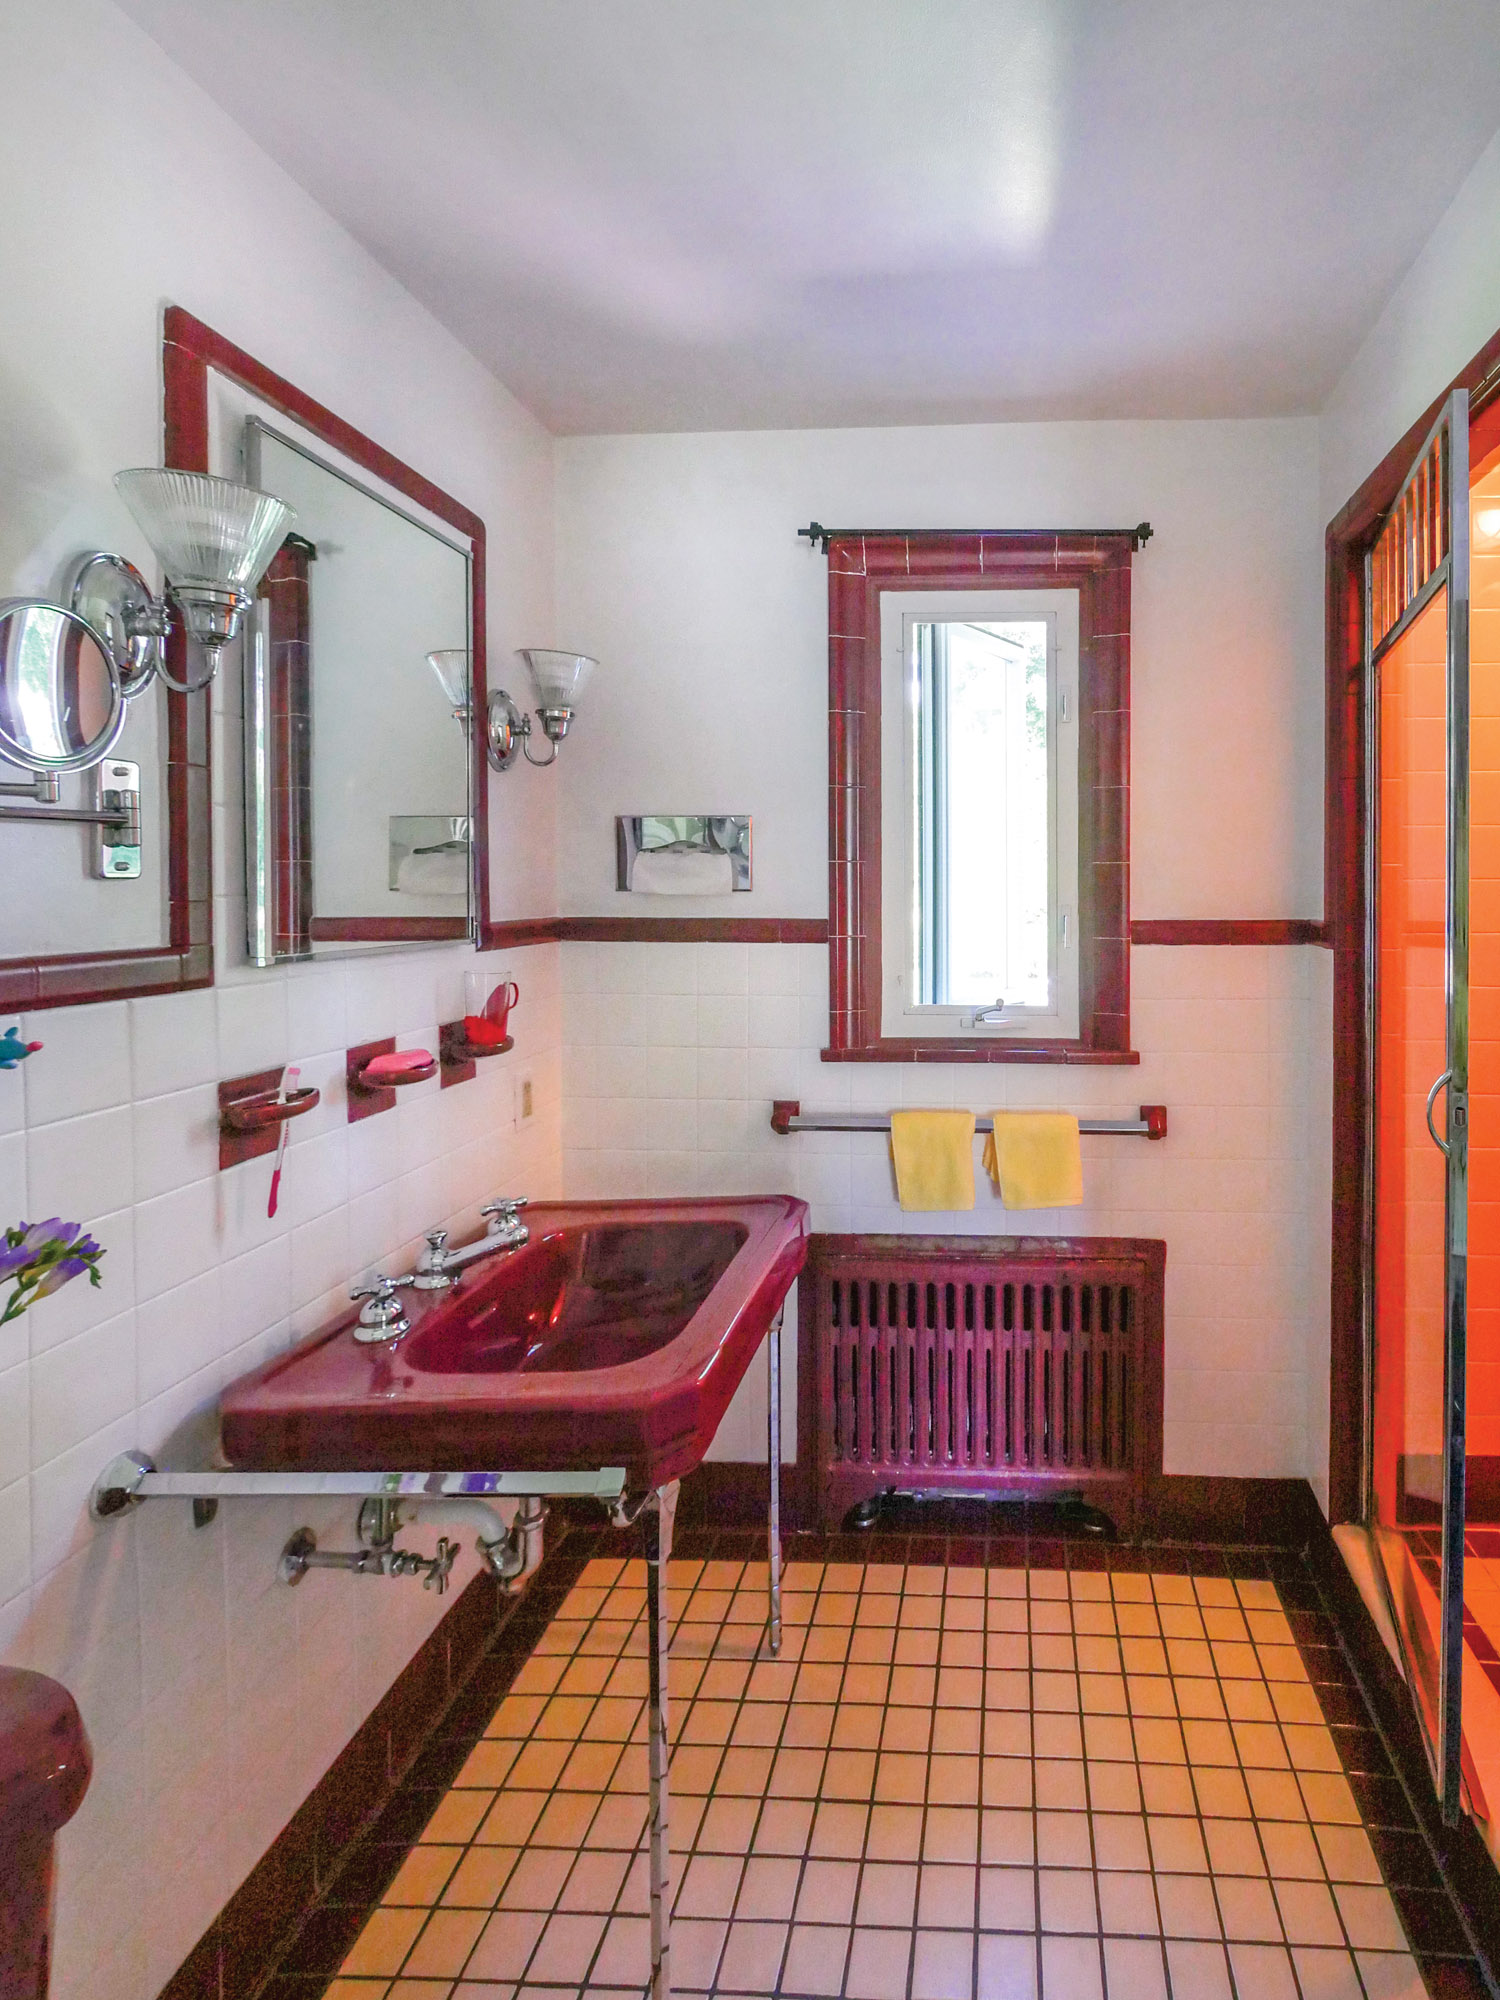 Similar to the blue and white bath, a third bathroom has burgundy accent tile and fixtures.